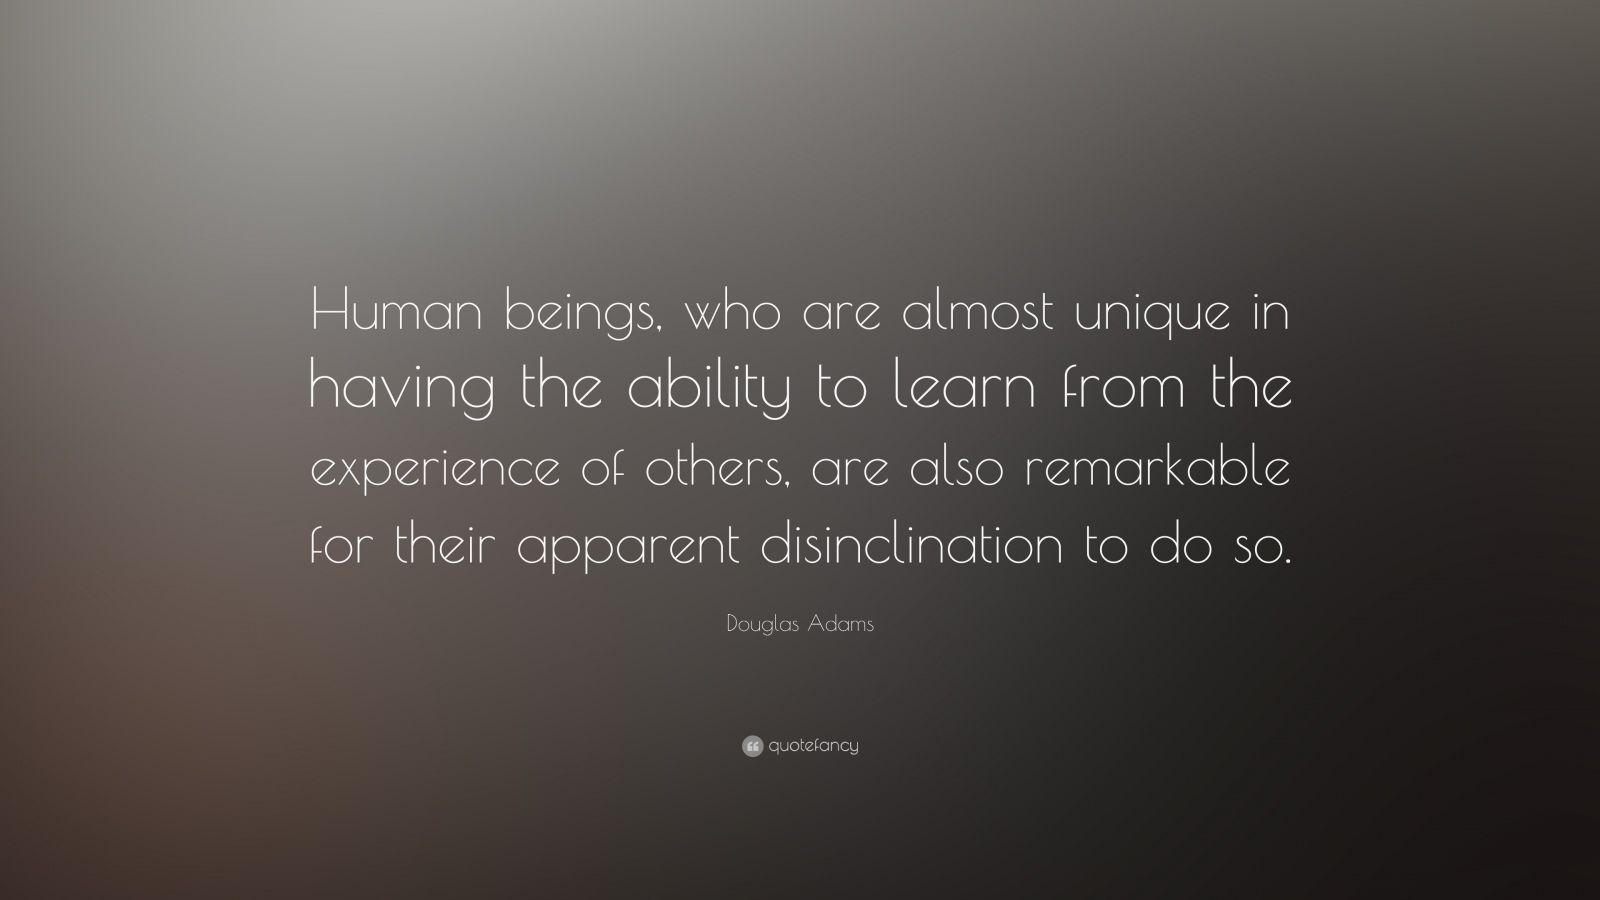 """Douglas Adams Quote: """"Human beings, who are almost unique in having the ability to learn from the experience of others, are also remarkable for their apparent disinclination to do so."""""""